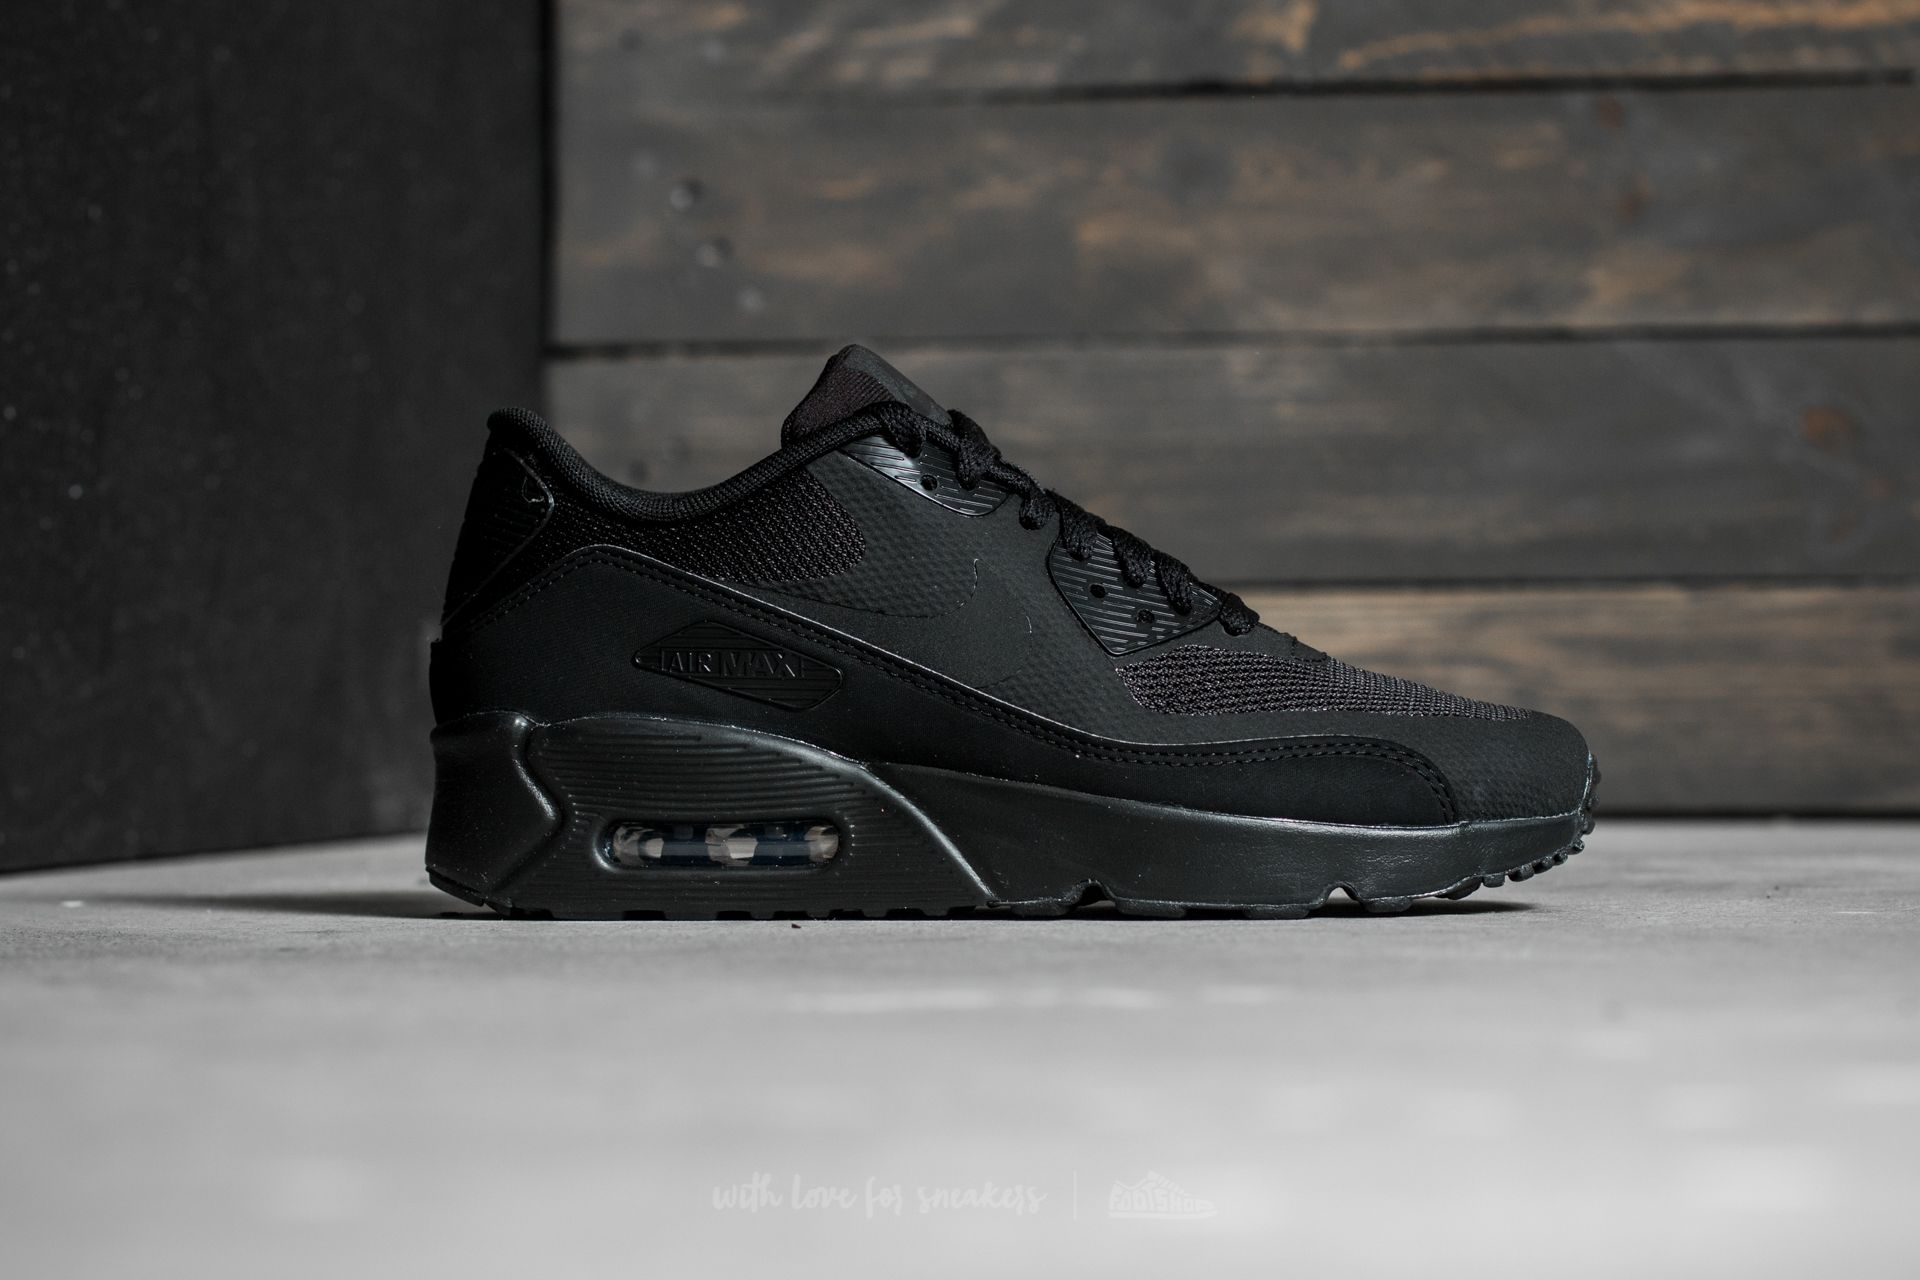 factory authentic 4c8a8 c85b8 Nike Air Max 90 Ultra 2.0 (GS) Black/ Black-Black | Footshop